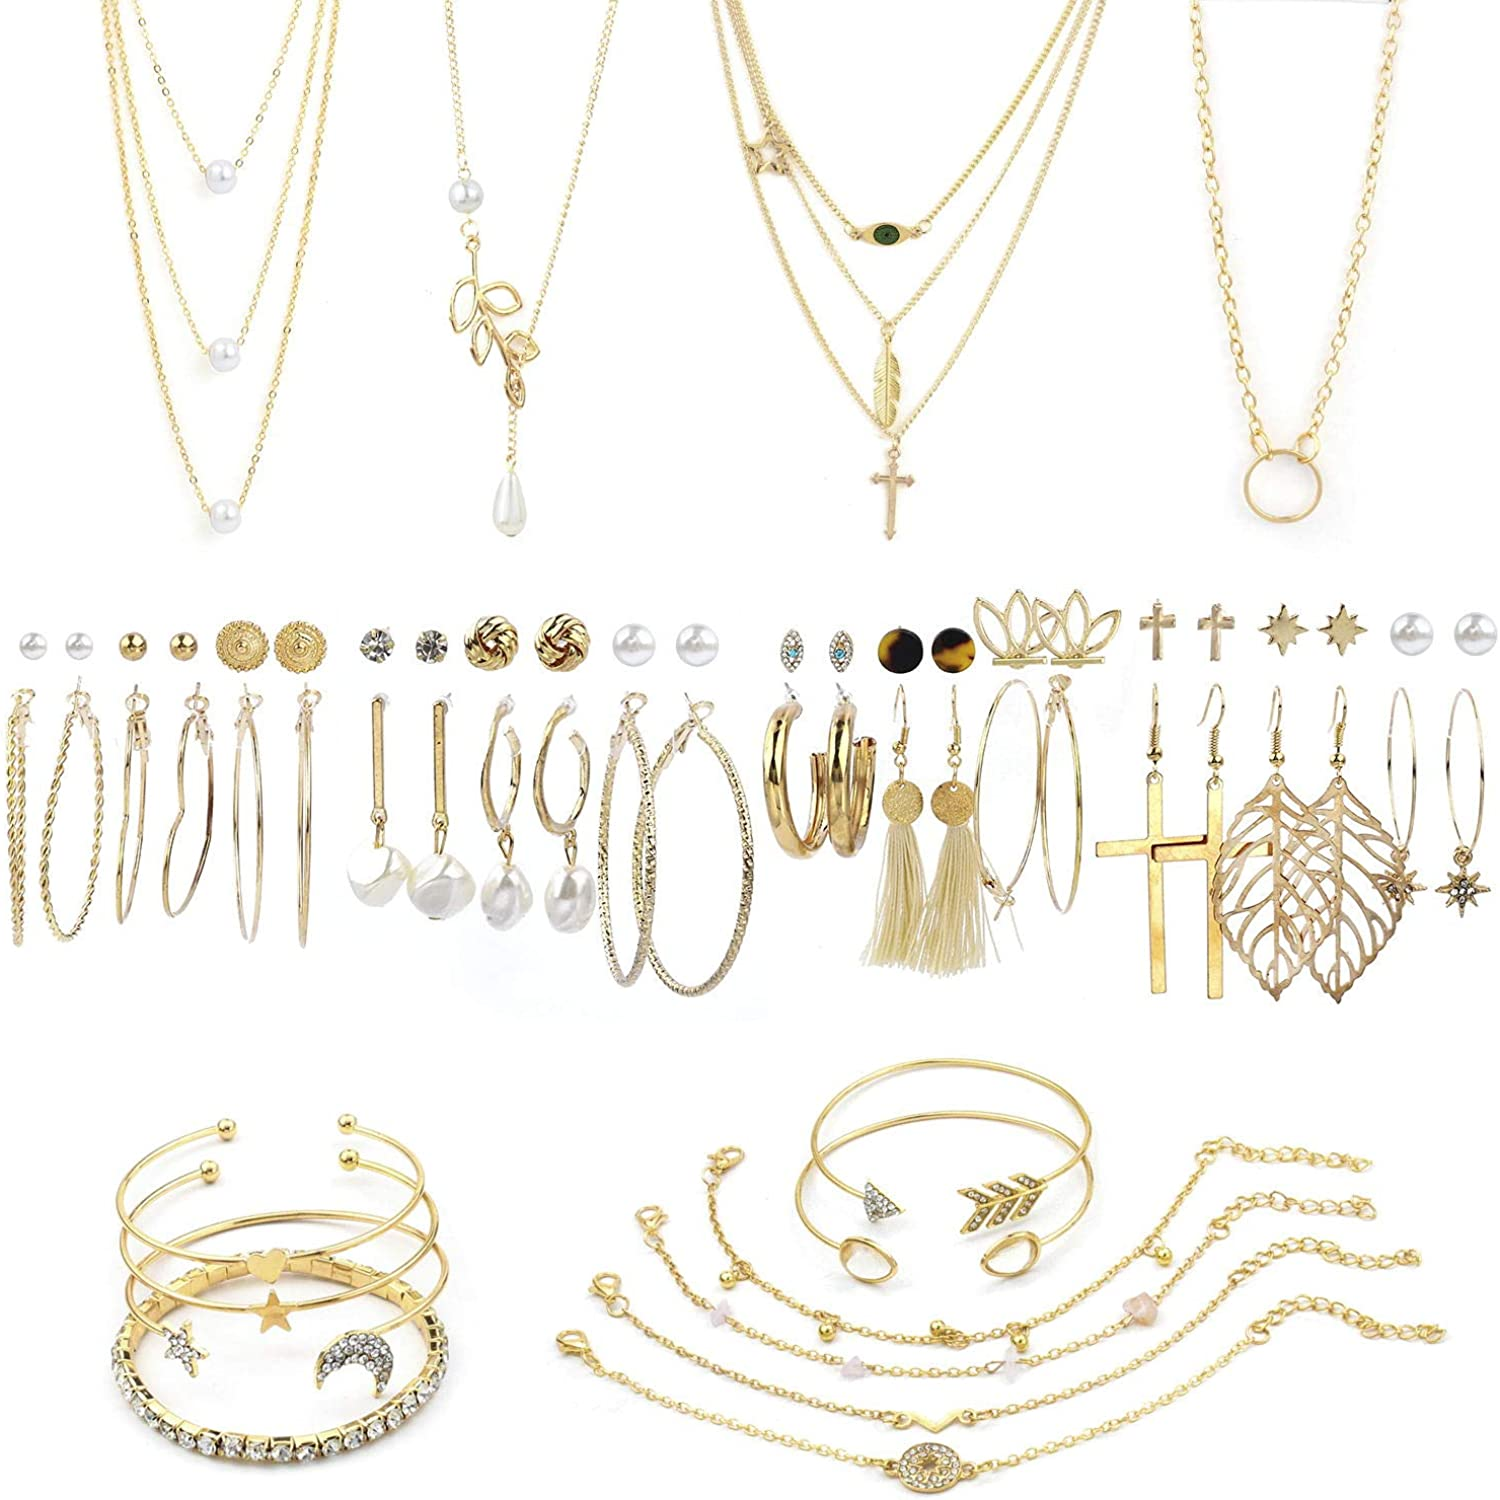 AROIC 38 PCS Gold Jewelry Set with 4 PCS Necklace,10 PCS Bracelet,24 PCS Layered Ball Dangle Hoop Stud Earrings for Women Girls Jewelry Fashion and Valentine Birthday Party Gift